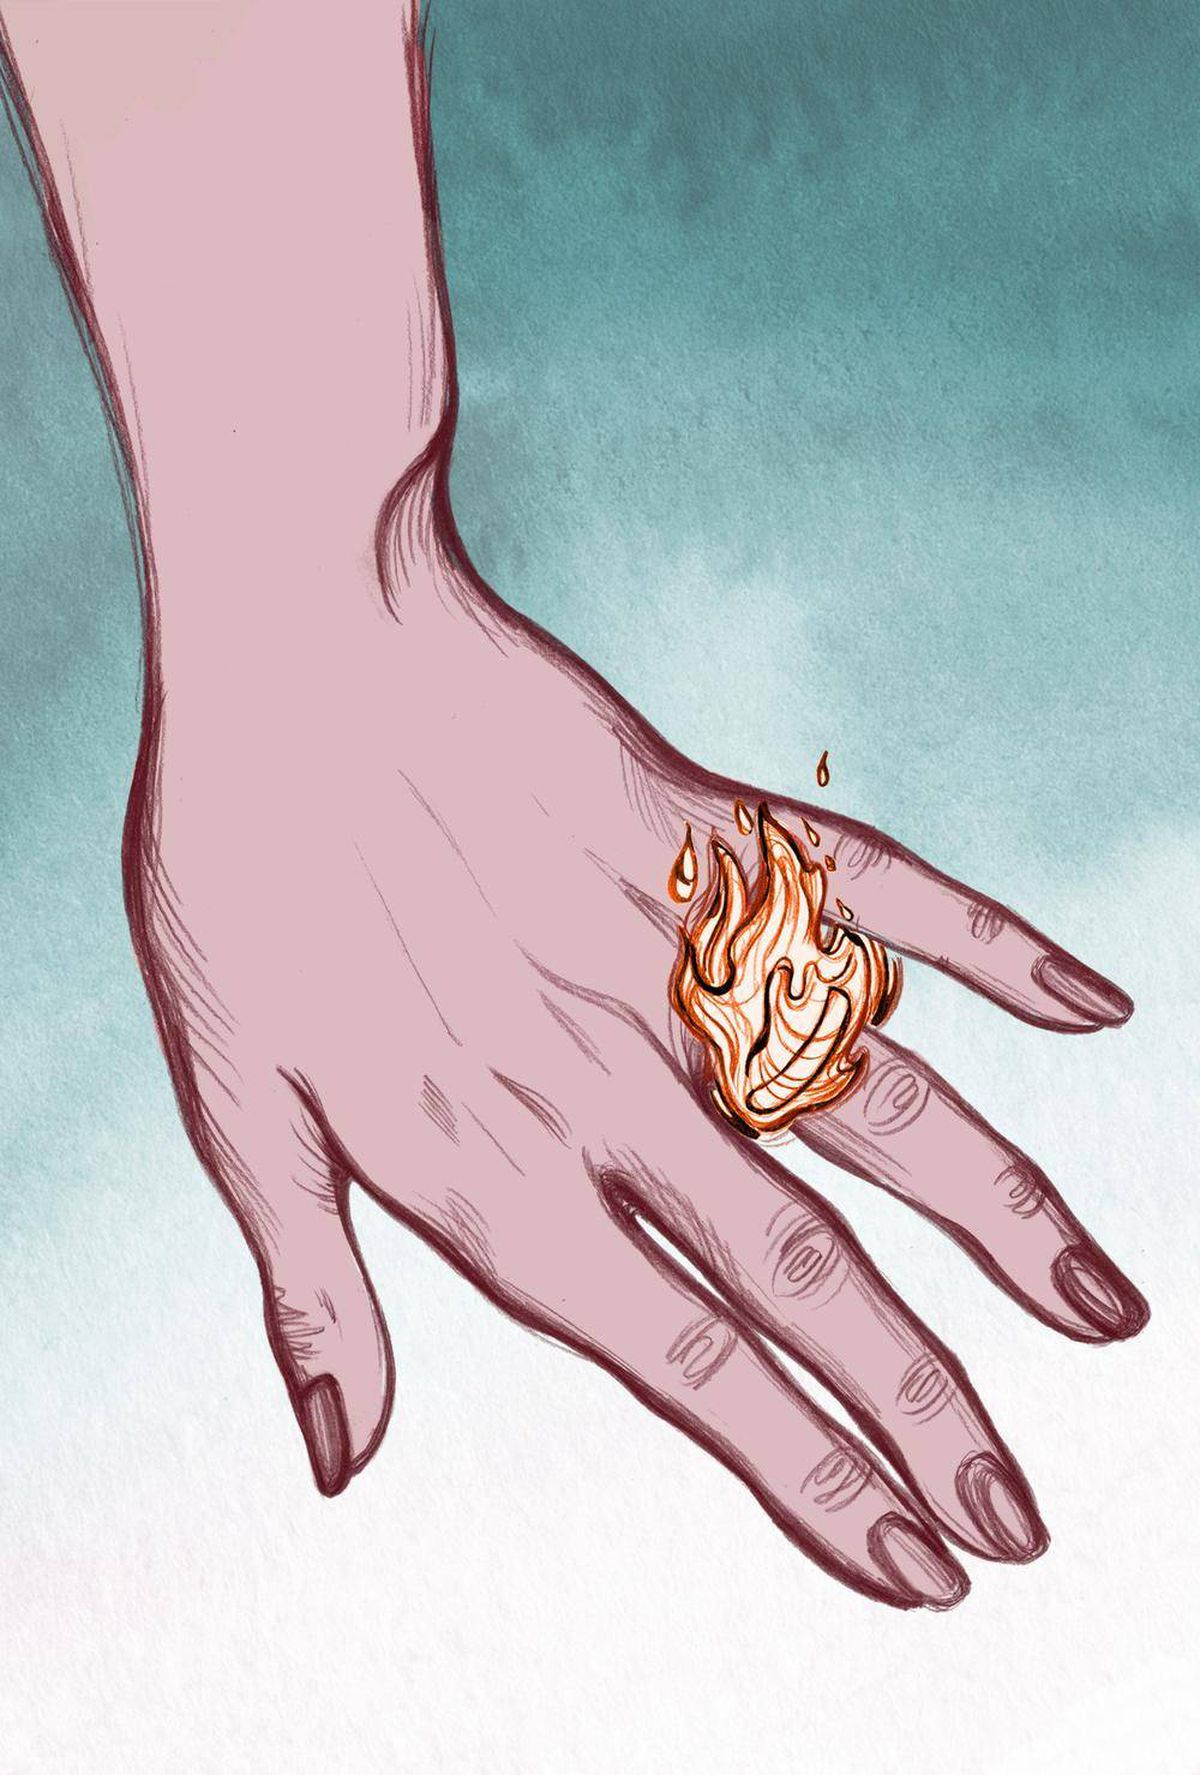 My wedding ring has the 34-year itch - The Globe and Mail